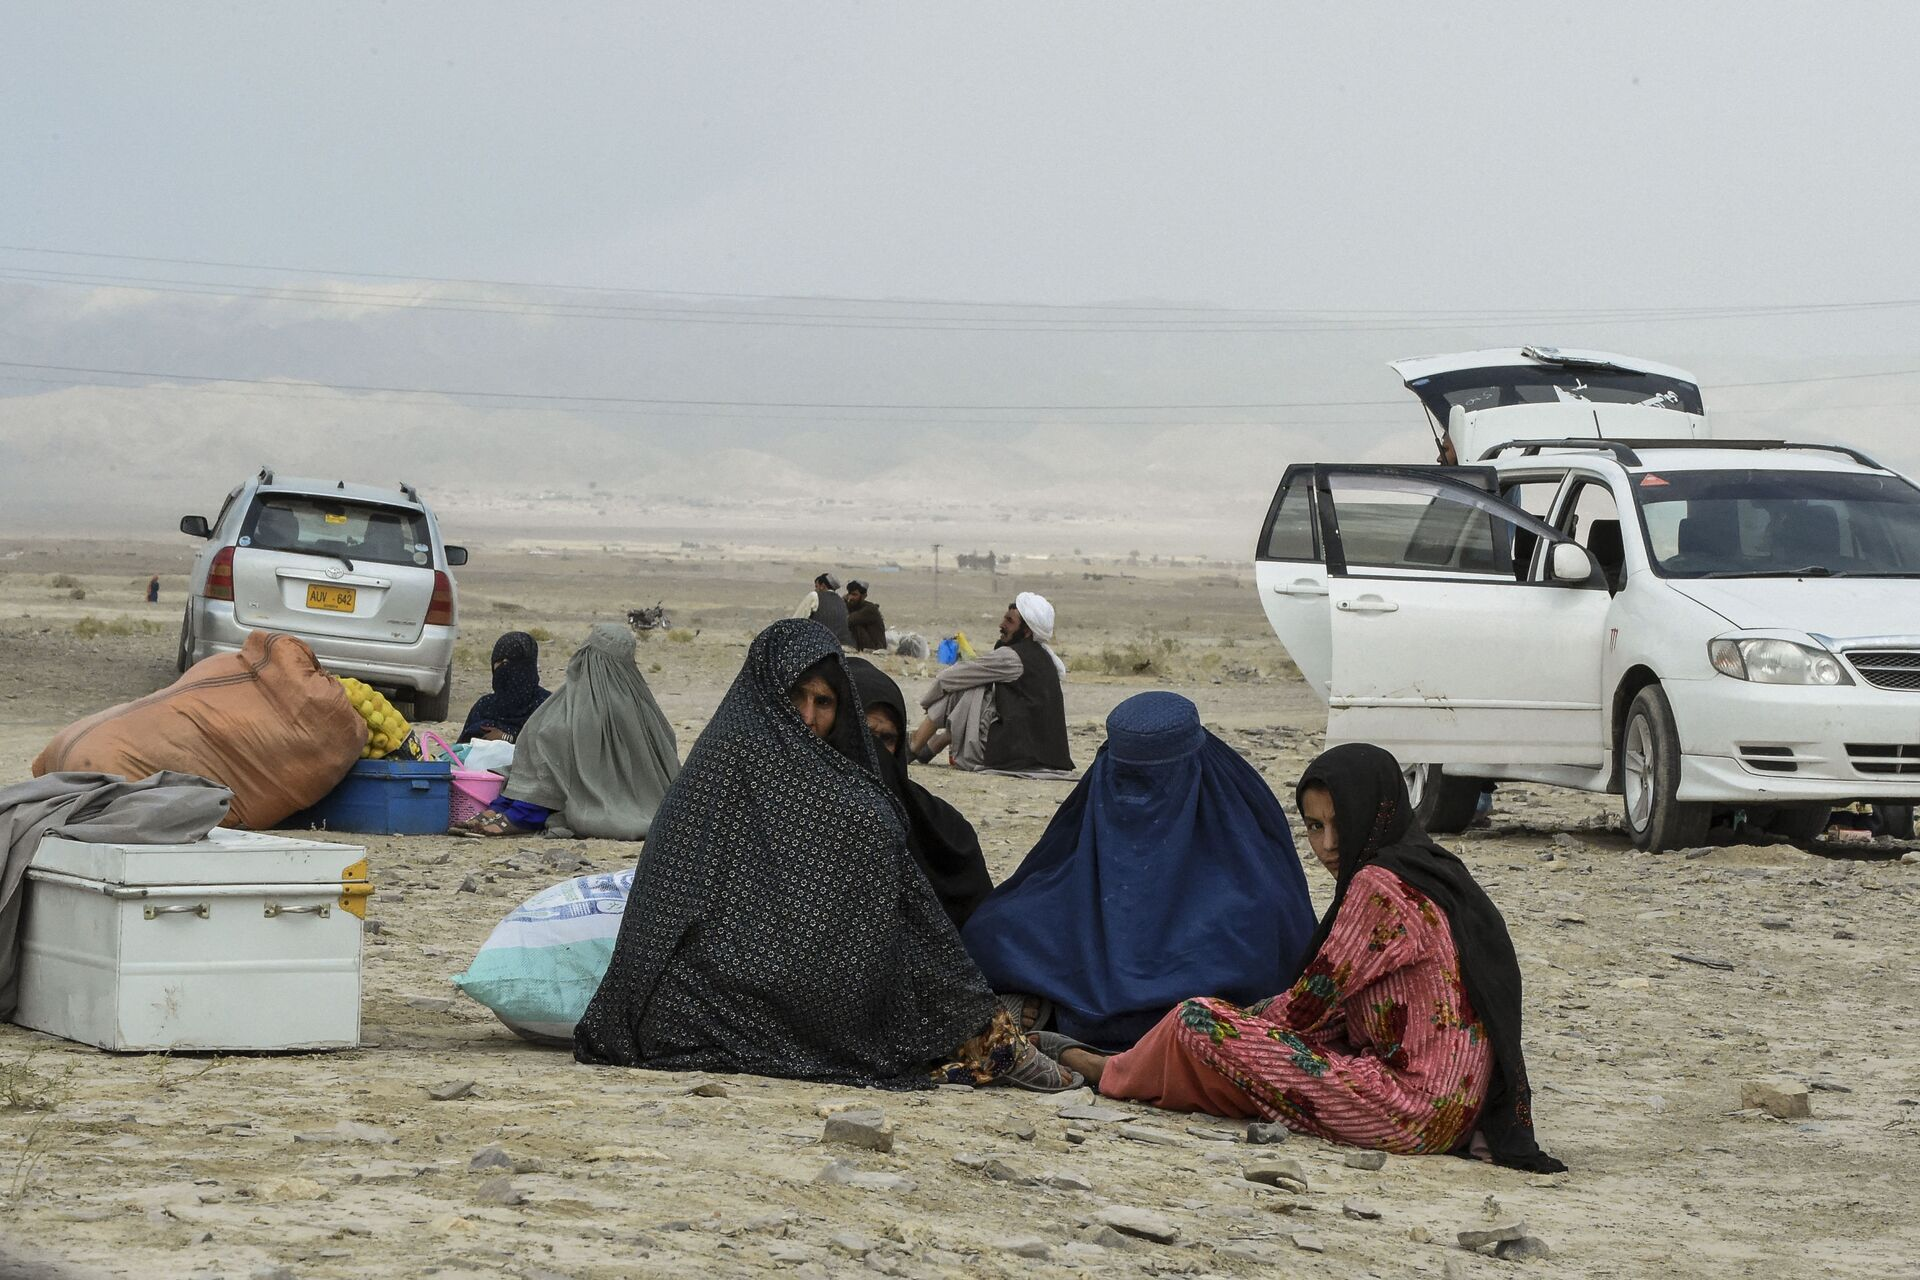 Stranded people wait for the reopening of border crossing point in Pakistan's border town of Chaman on July 16, 2021, following clashes between Afghan forces and Taliban fighters in Spin Boldak to retake the key border crossing with Pakistan. - Sputnik International, 1920, 15.09.2021